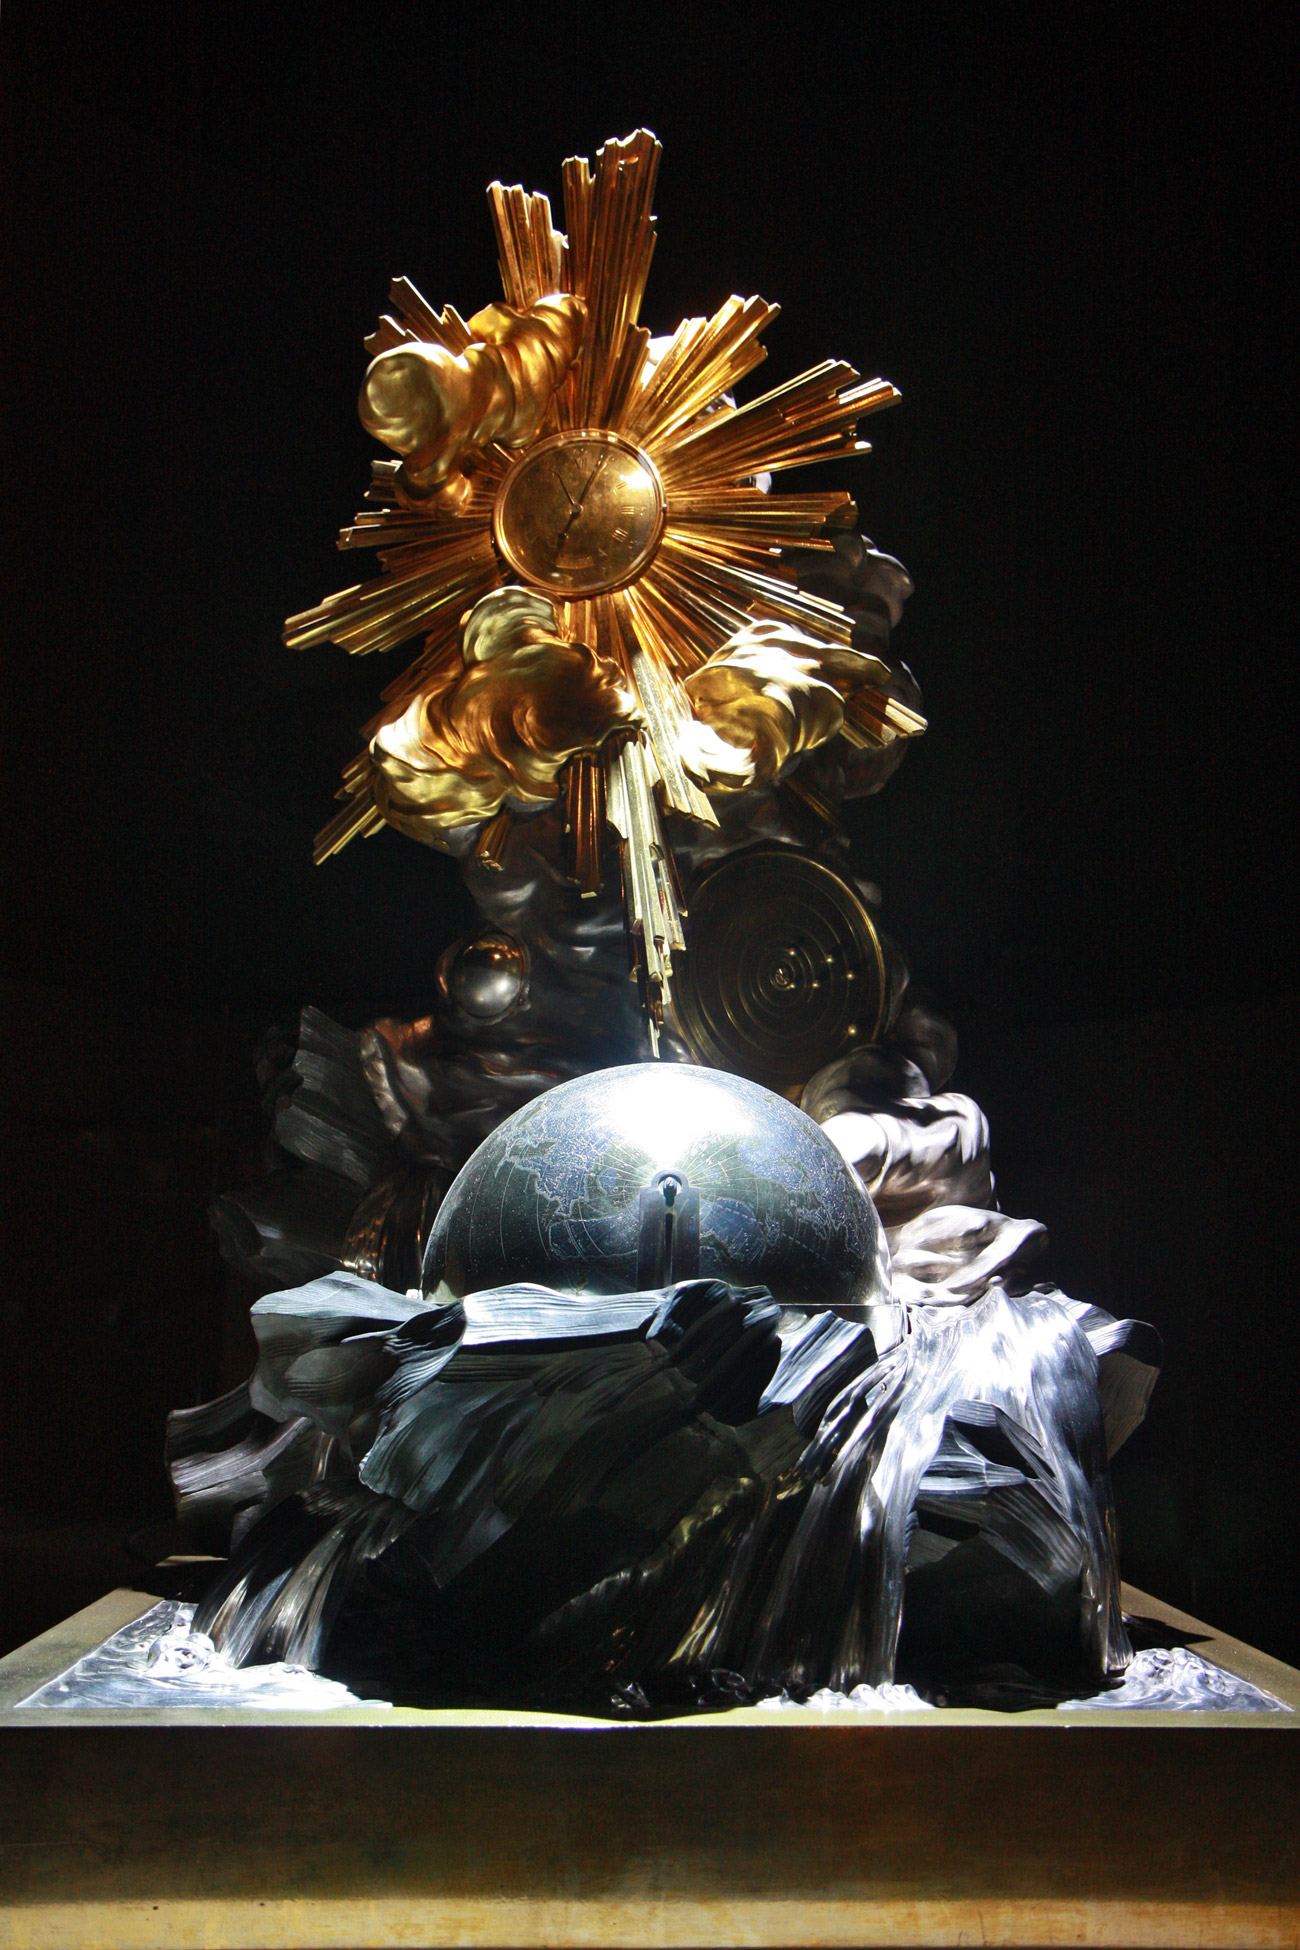 A decorative clock consisting of a dark sphere below and a clock surrounded by a brilliant gold sunburst.